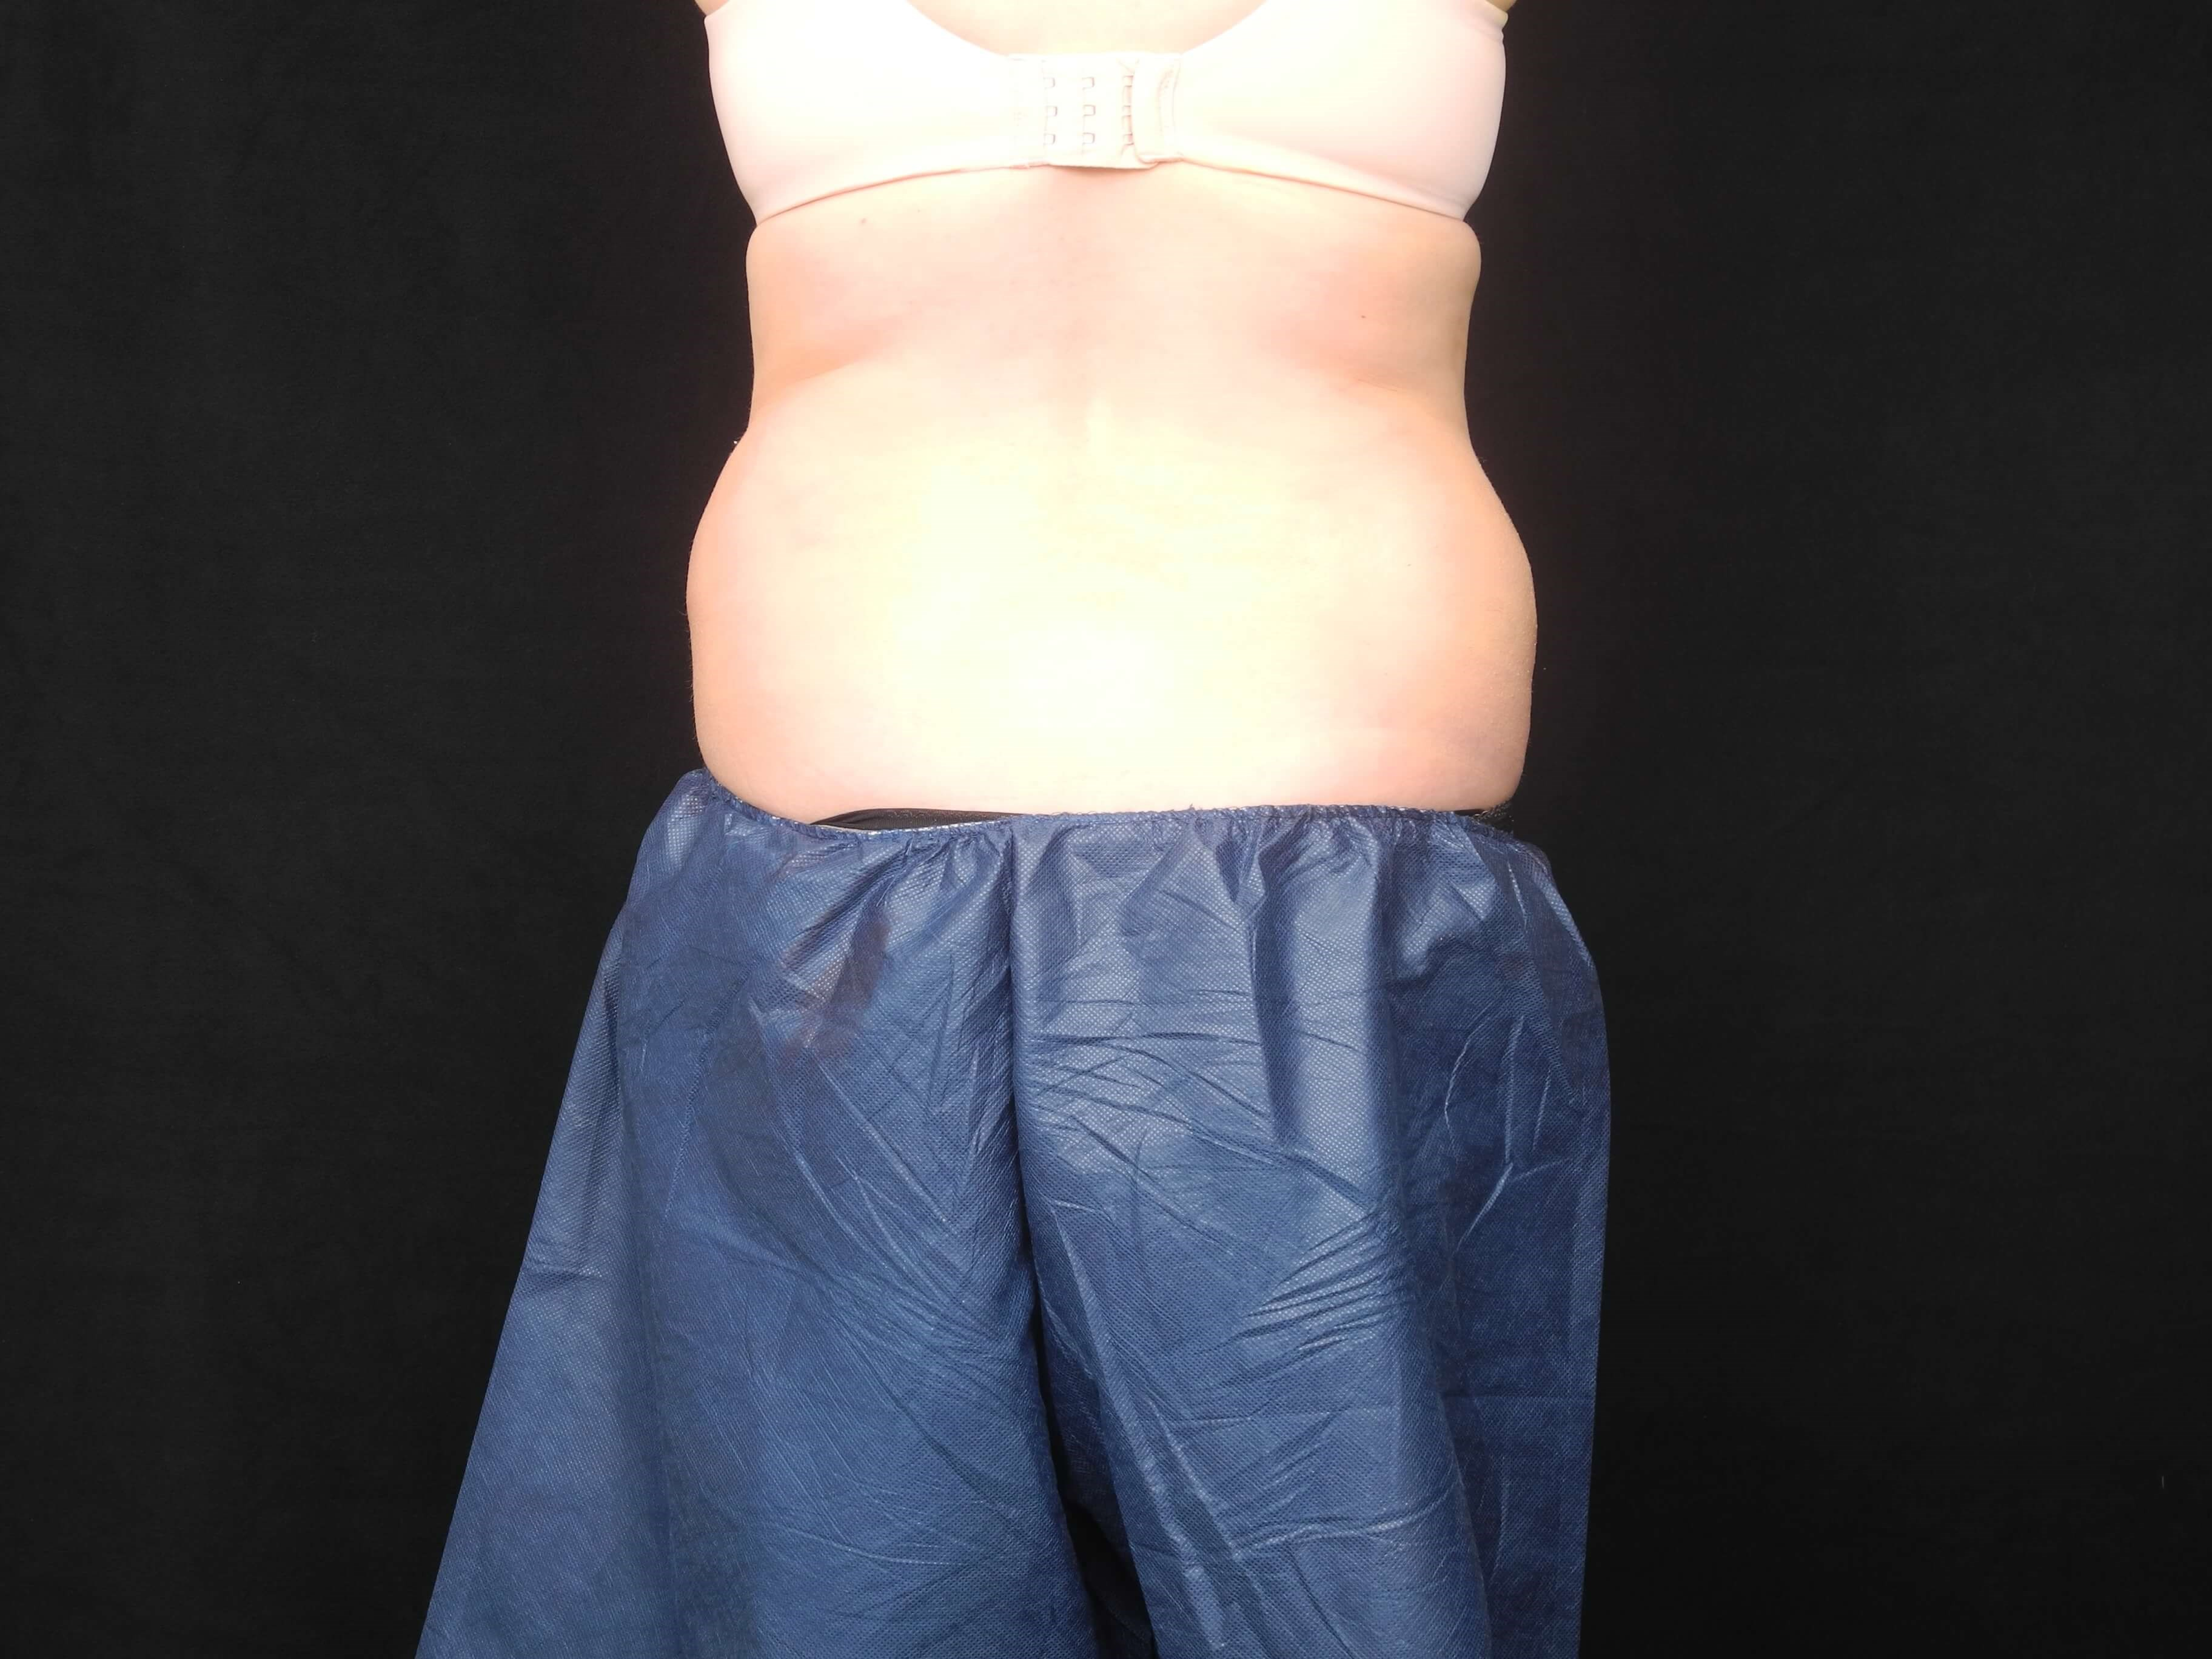 CoolSculpting of Abdomen/Flank Before